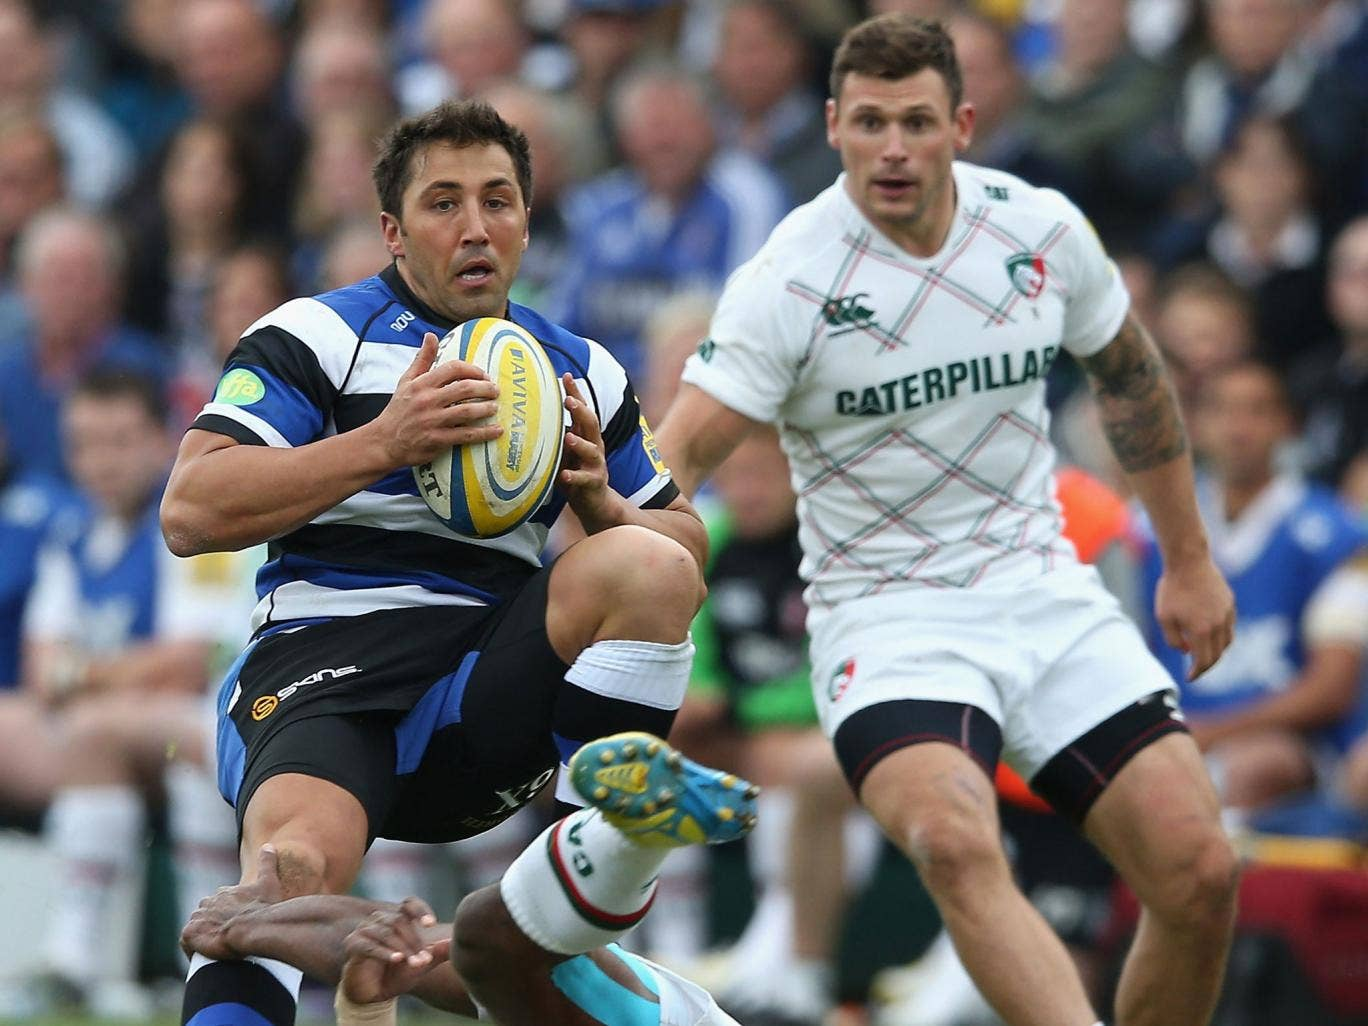 Gavin Henson, left, grew steadily more influential on his first start for Bath